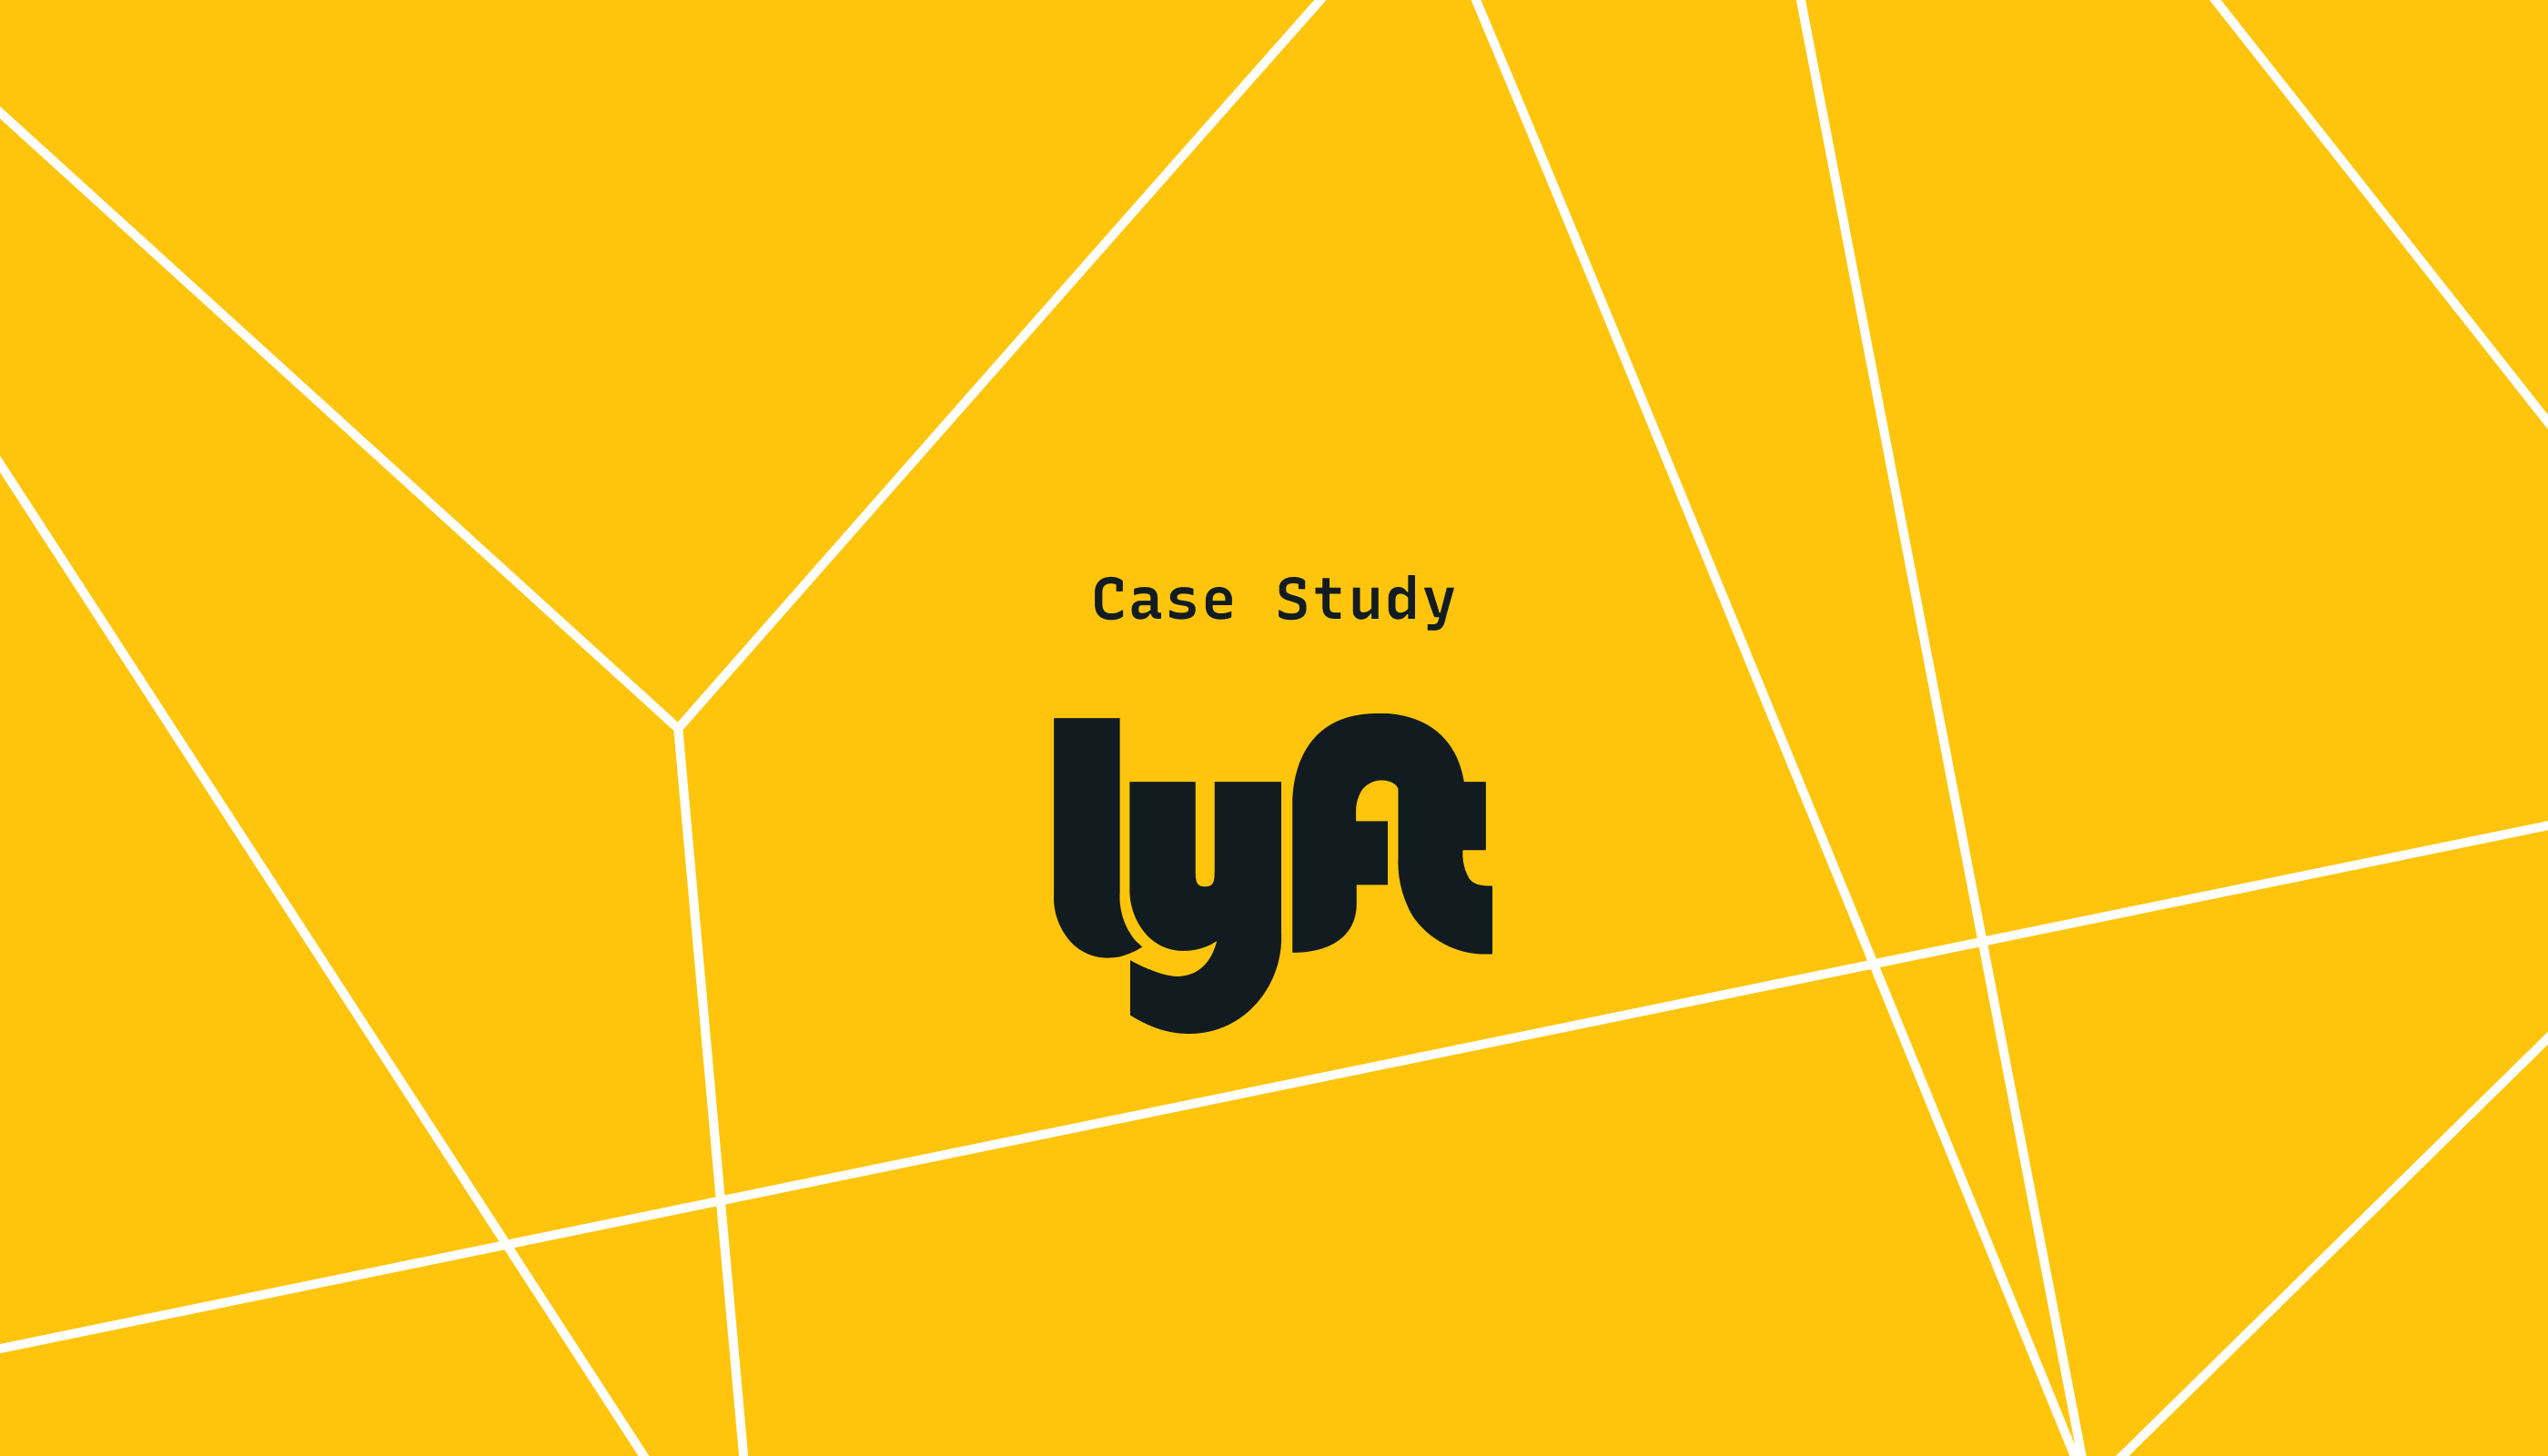 Lightstep Enables Lyft's Move to Microservices, Helping Drive Significant Revenue and Improving Product Efficiency